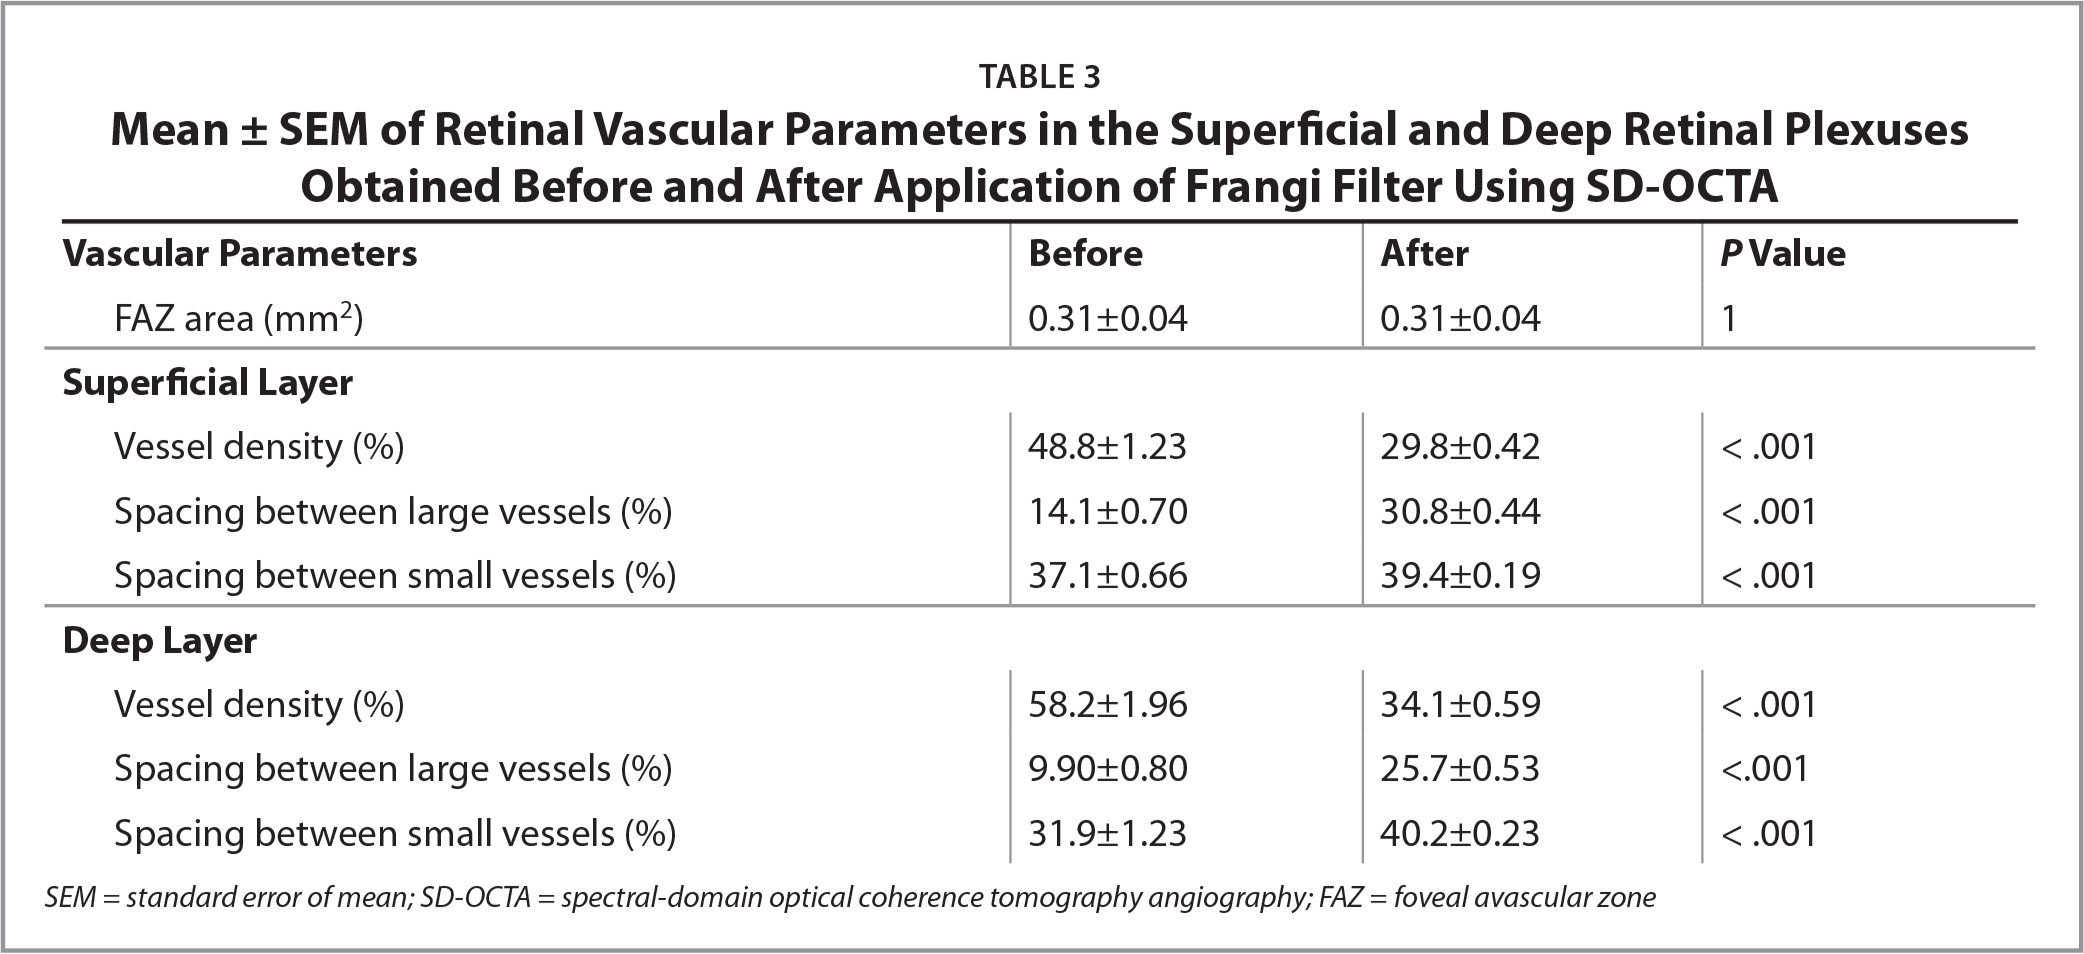 Mean ± SEM of Retinal Vascular Parameters in the Superficial and Deep Retinal Plexuses Obtained Before and After Application of Frangi Filter Using SD-OCTA